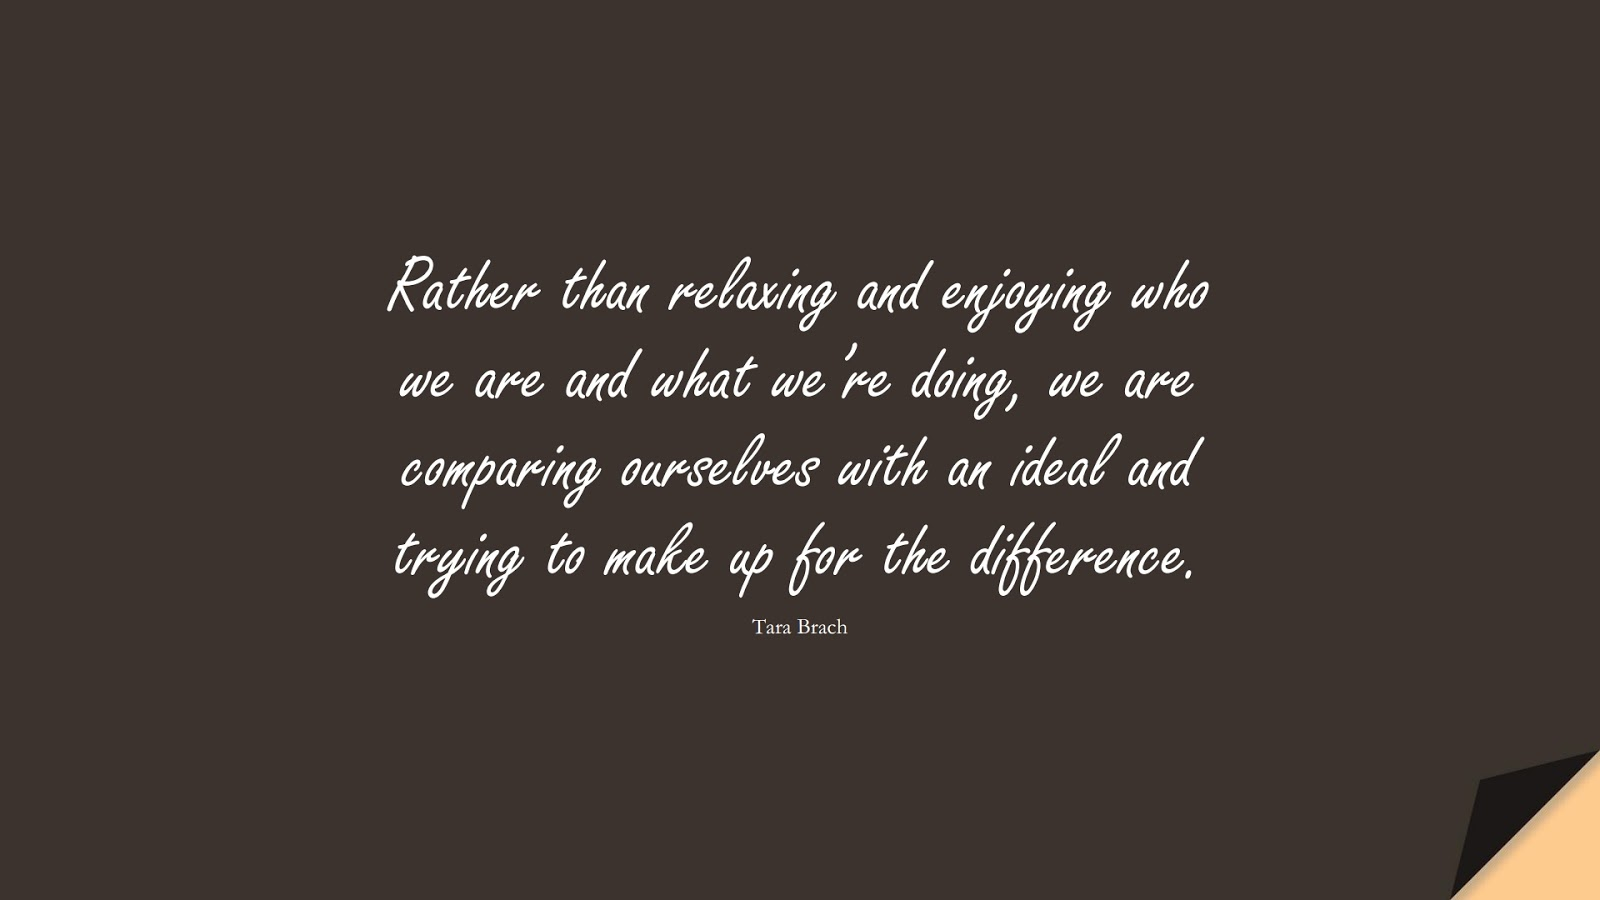 Rather than relaxing and enjoying who we are and what we're doing, we are comparing ourselves with an ideal and trying to make up for the difference. (Tara Brach);  #AnxietyQuotes